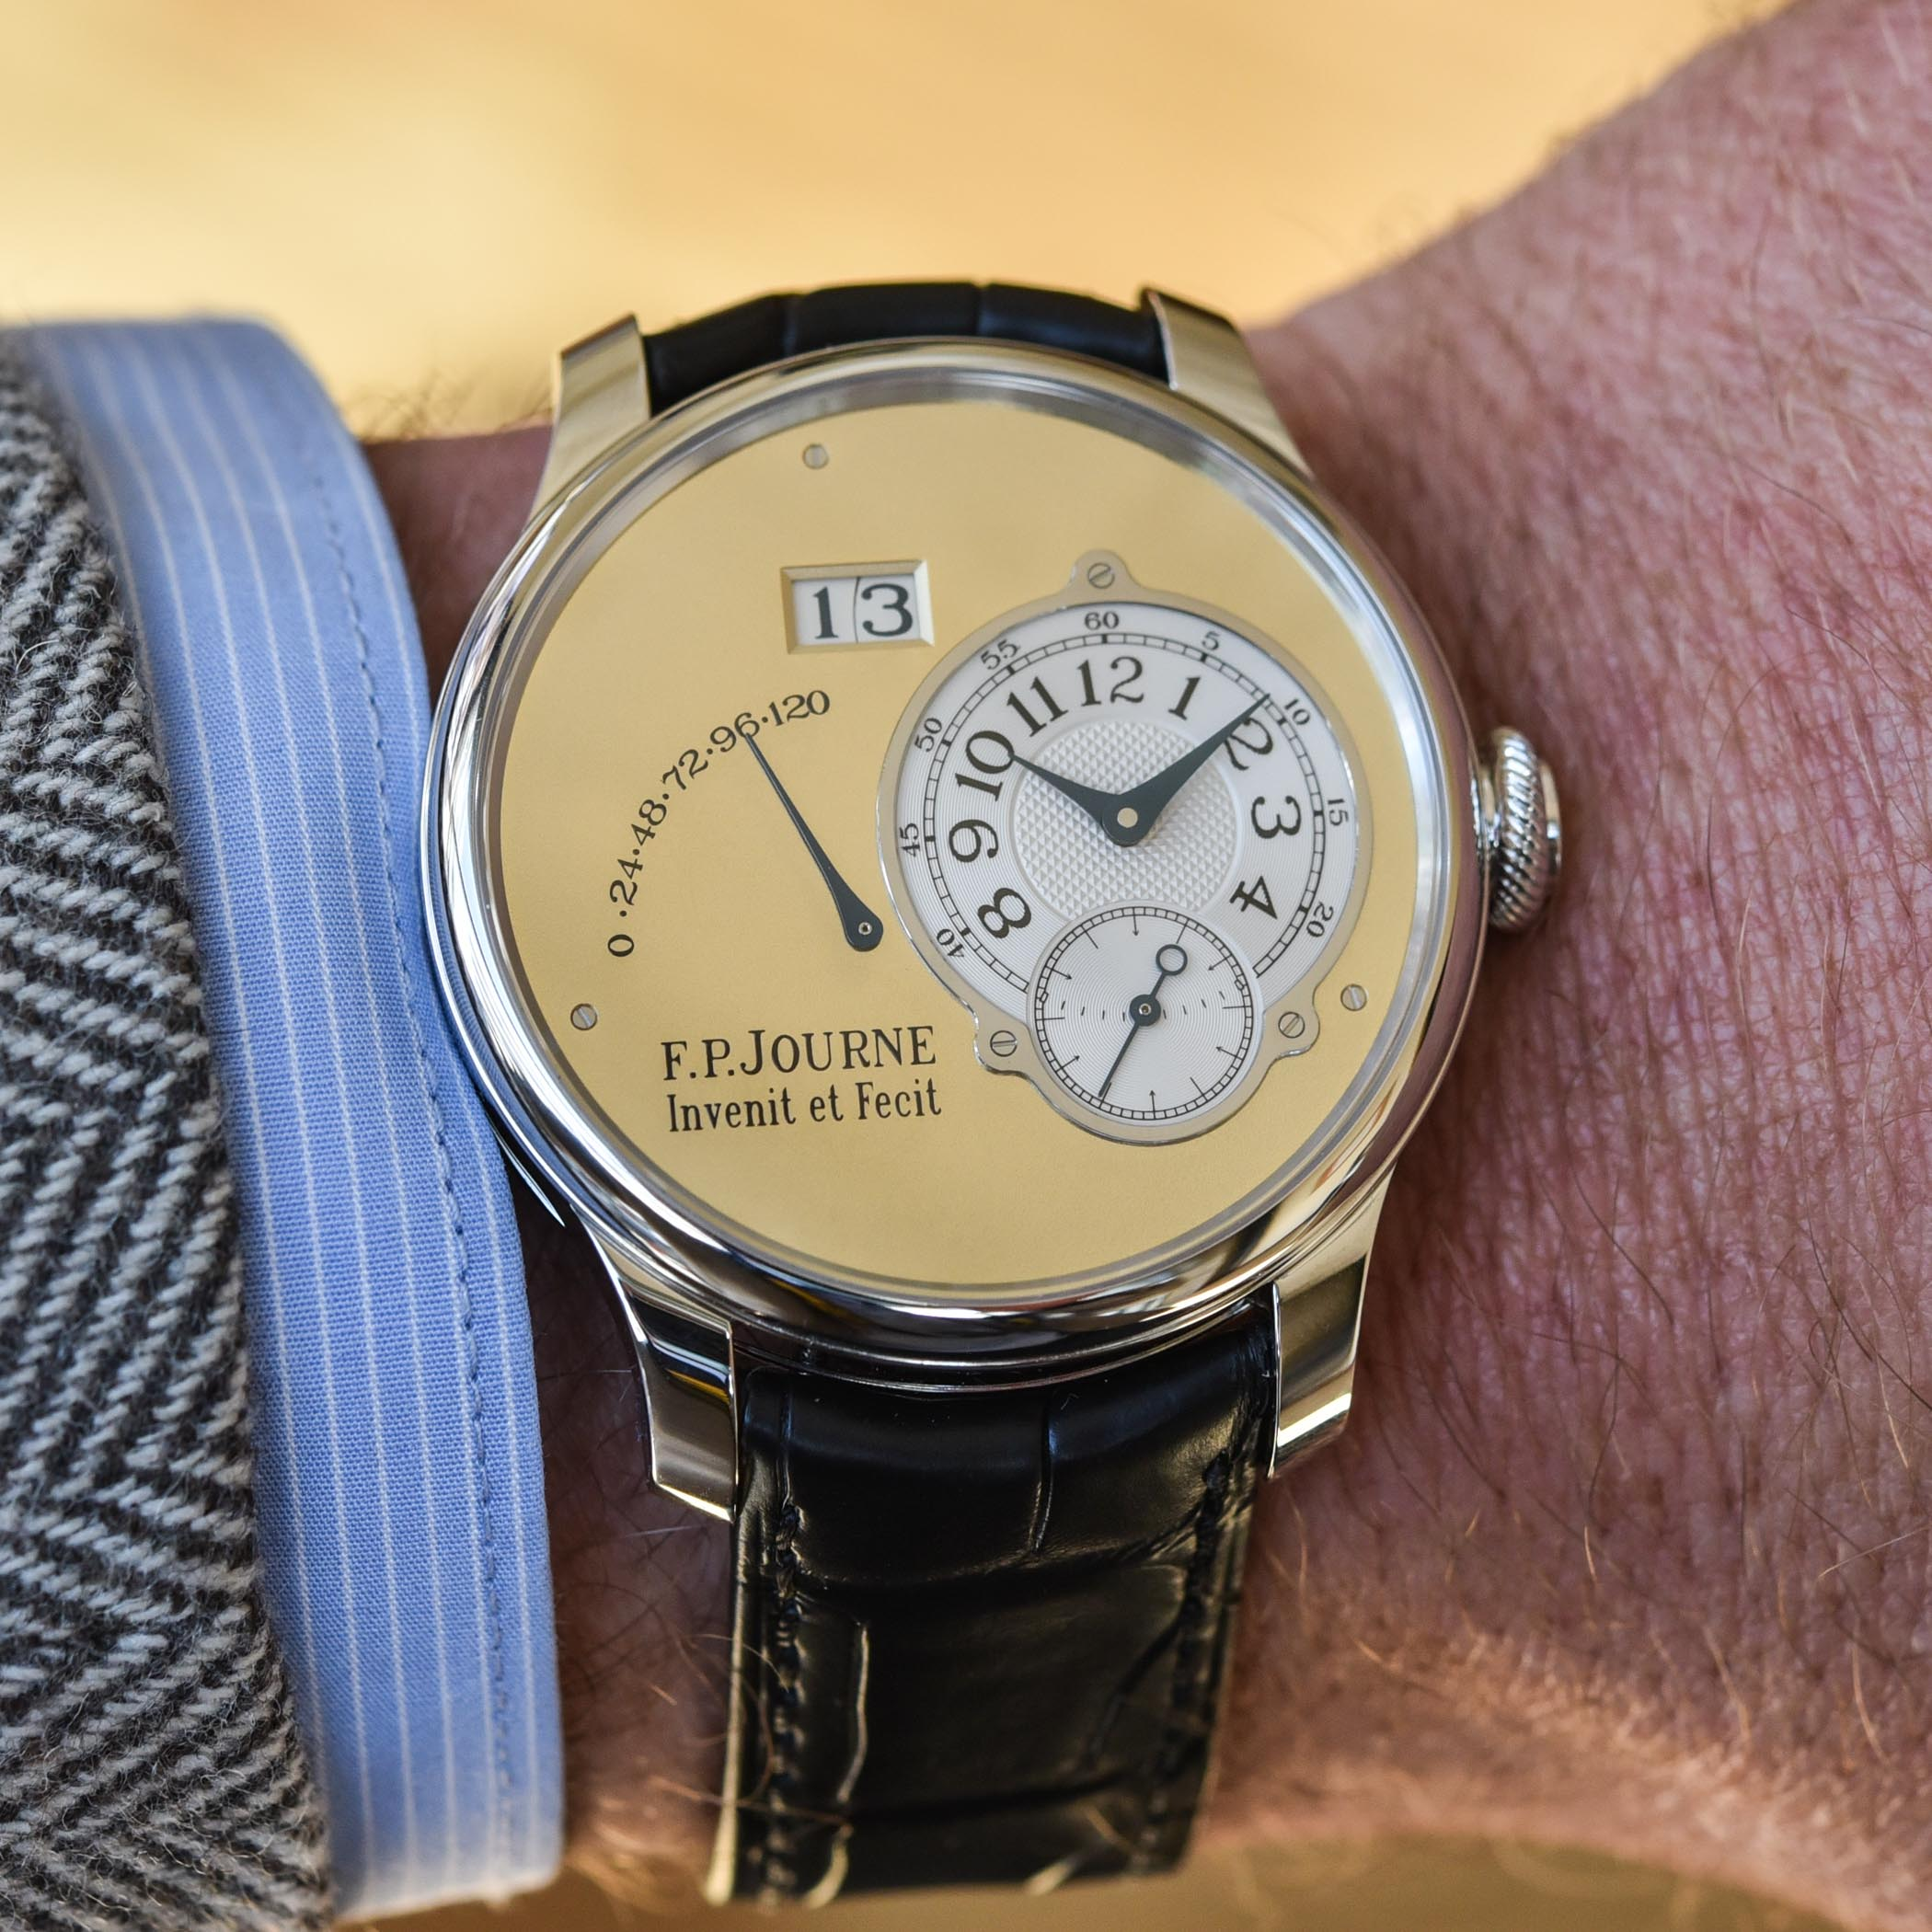 FP Journe Automatique Limited Edition 20th anniversary Octa - review - 20